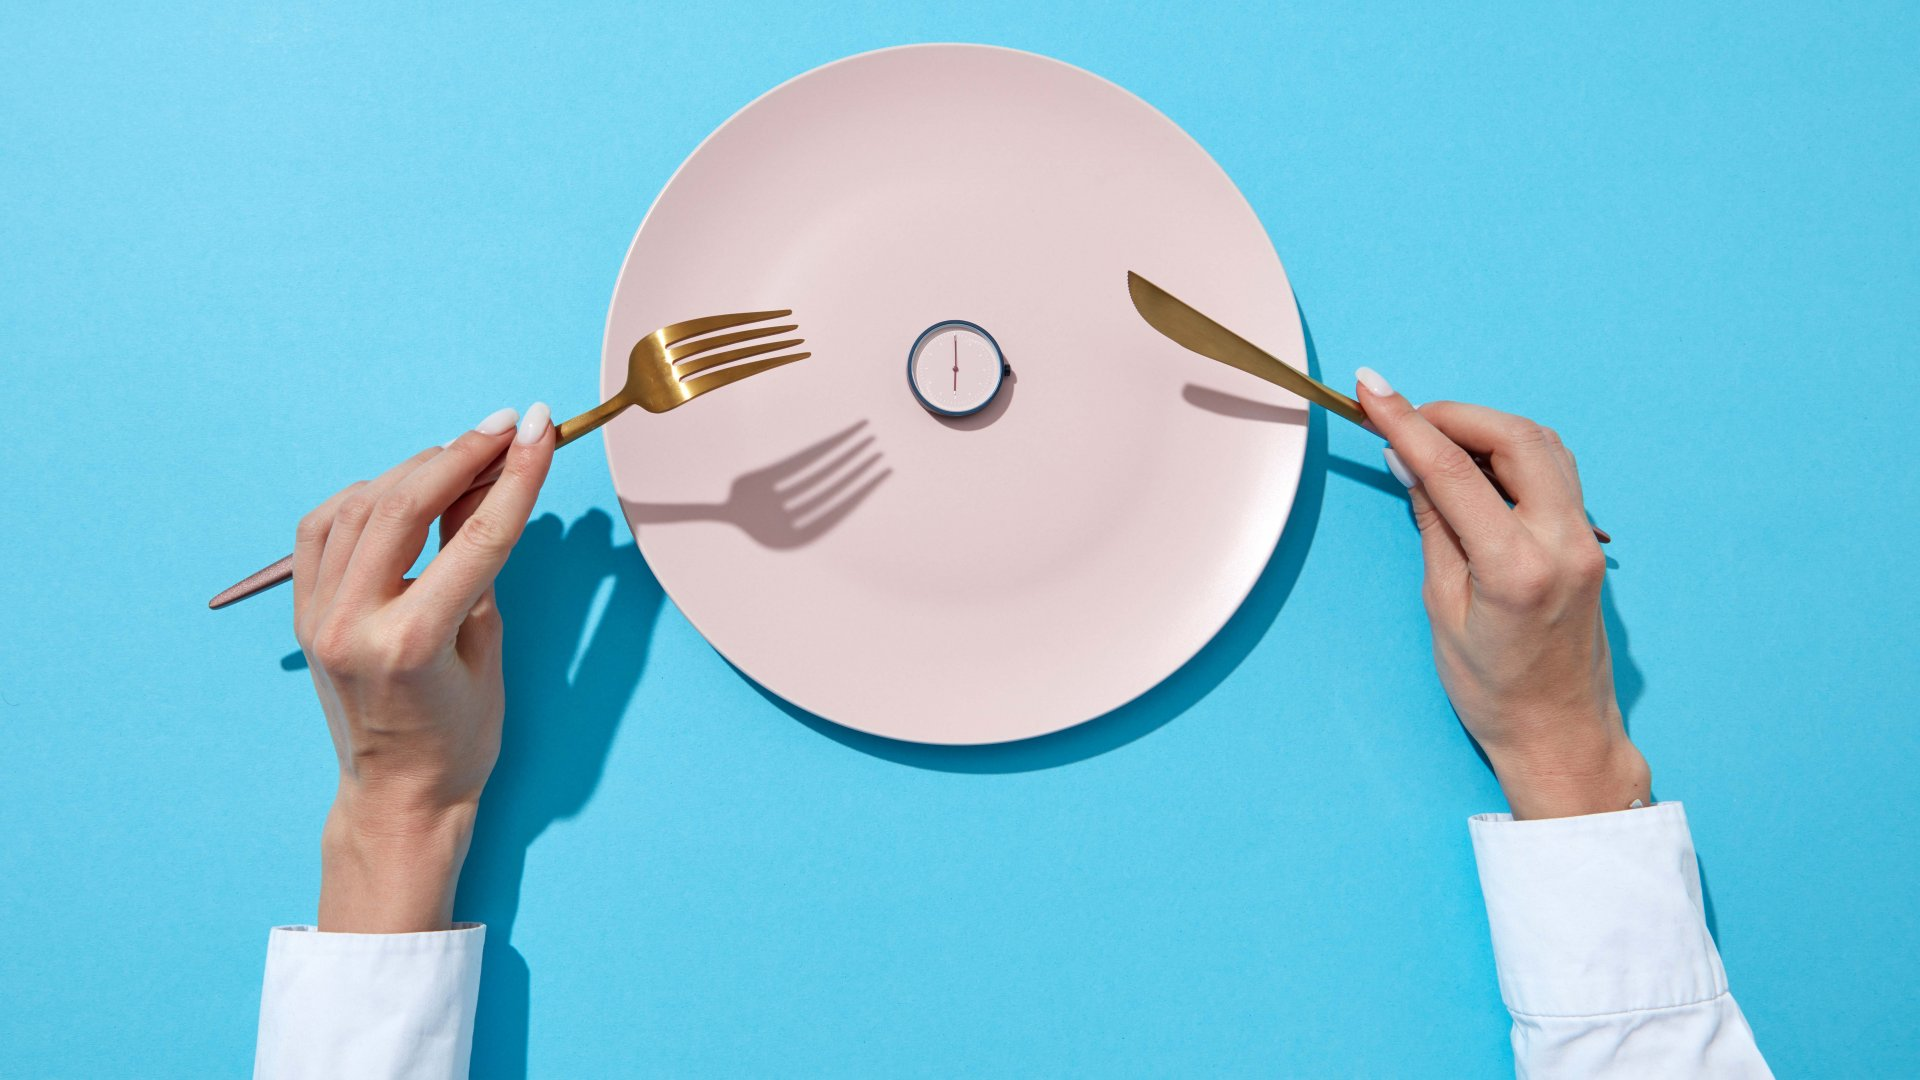 You Don't Have to Starve for Days to Get the Benefits of Fasting